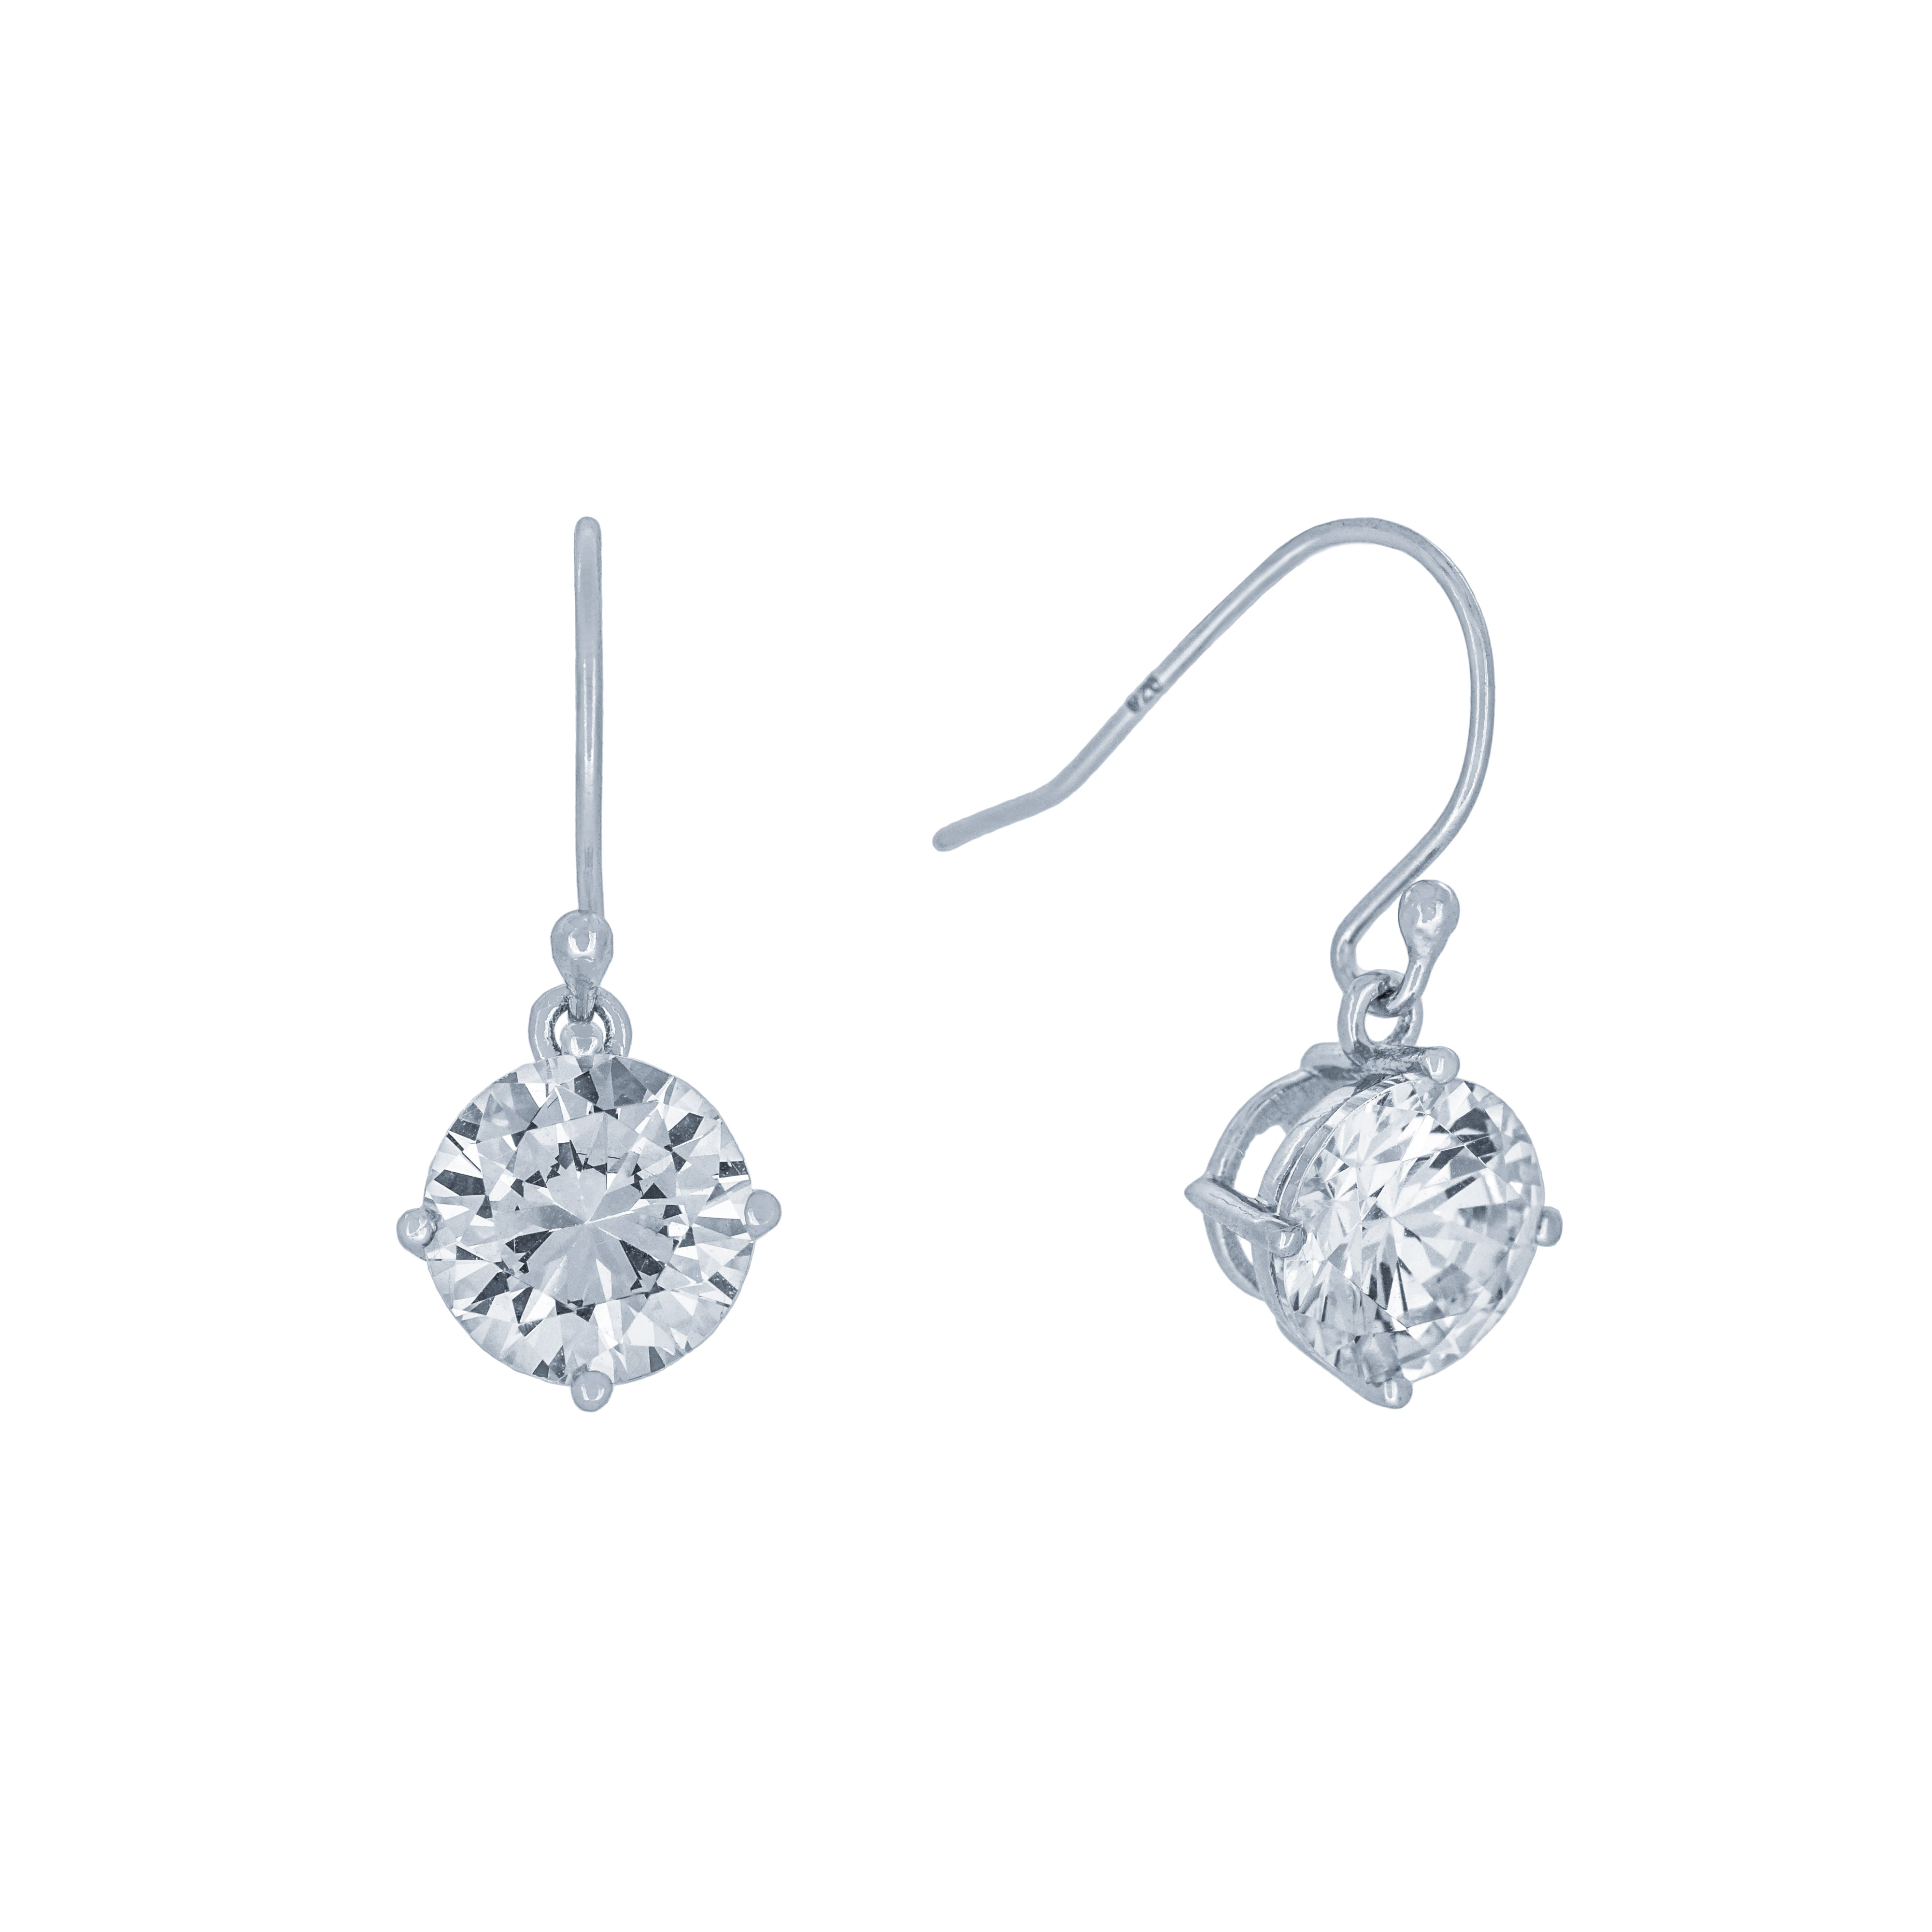 (100105) Round Cut 8mm White Cubic Zirconia Hook Earrings In Sterling Silver